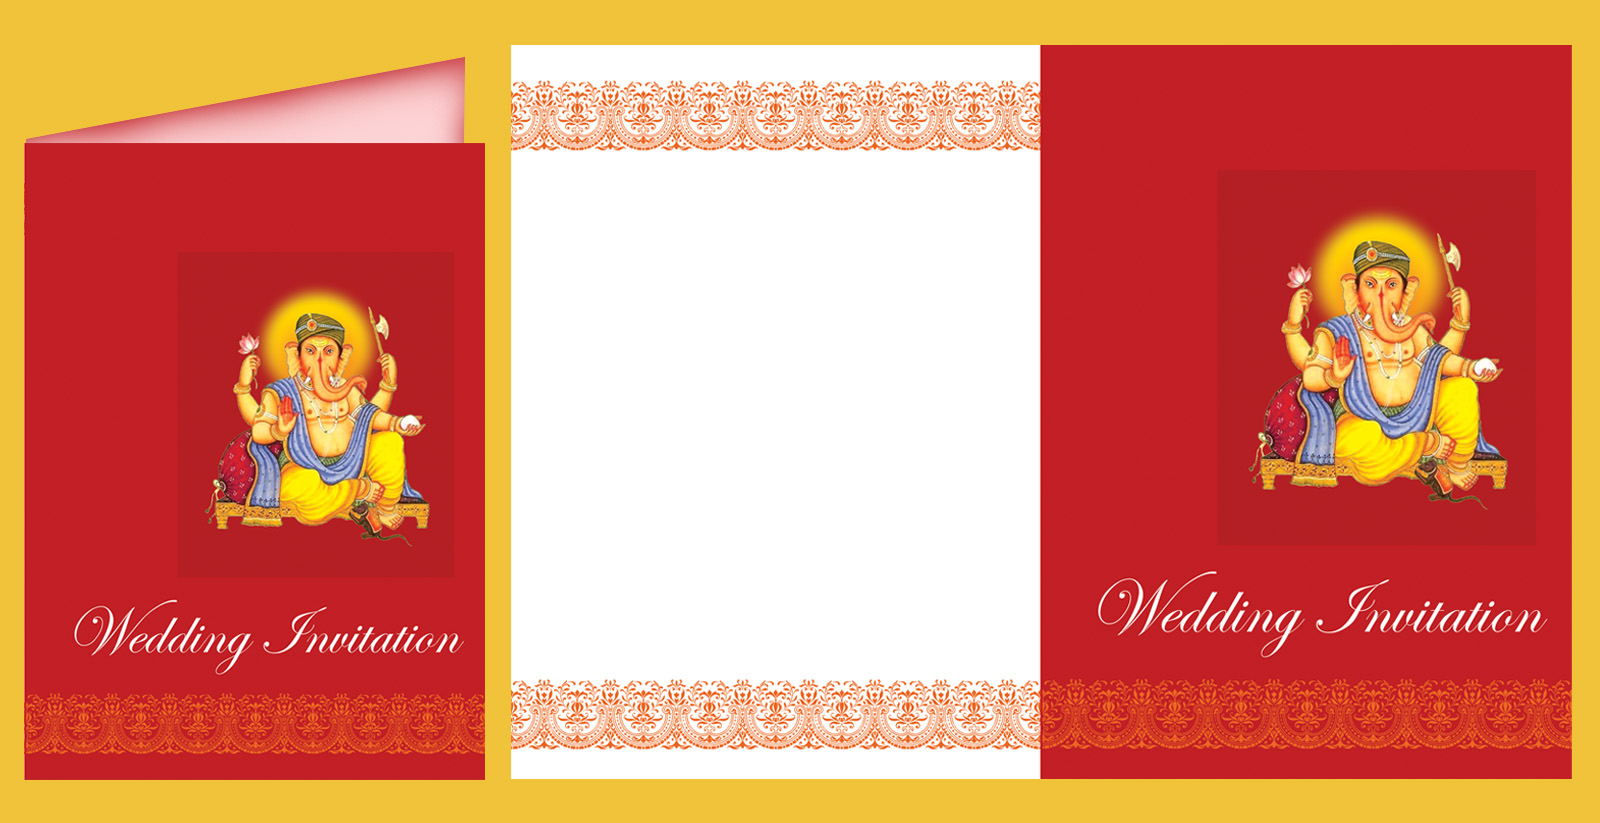 Hindu Wedding Invitation Card: Tela's Blog: Hindu Wedding Invitation